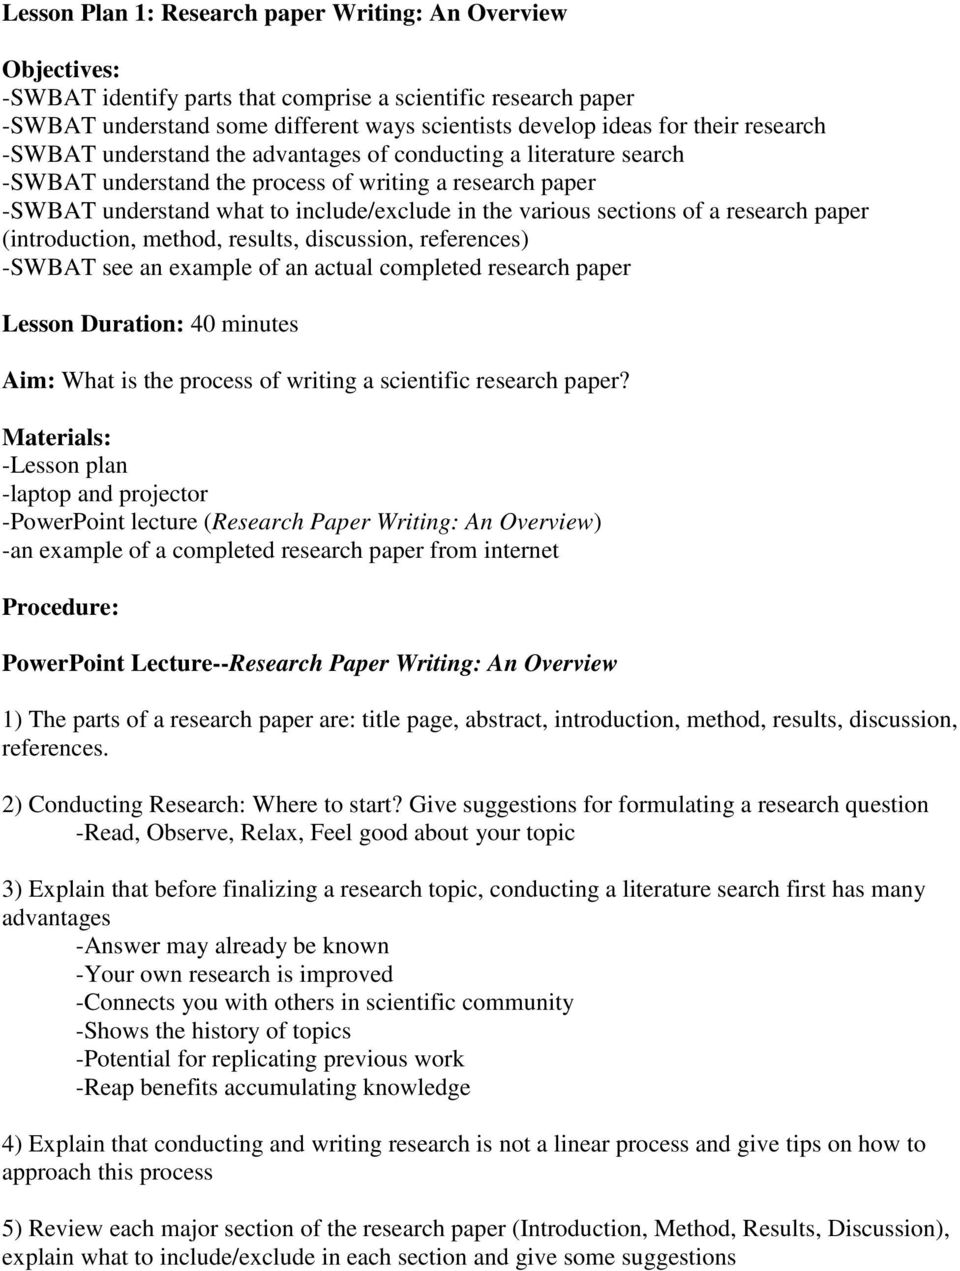 006 Page 1 Research Paper How To Write Results And Discussion Surprising In The Section Of A Quantitative Full